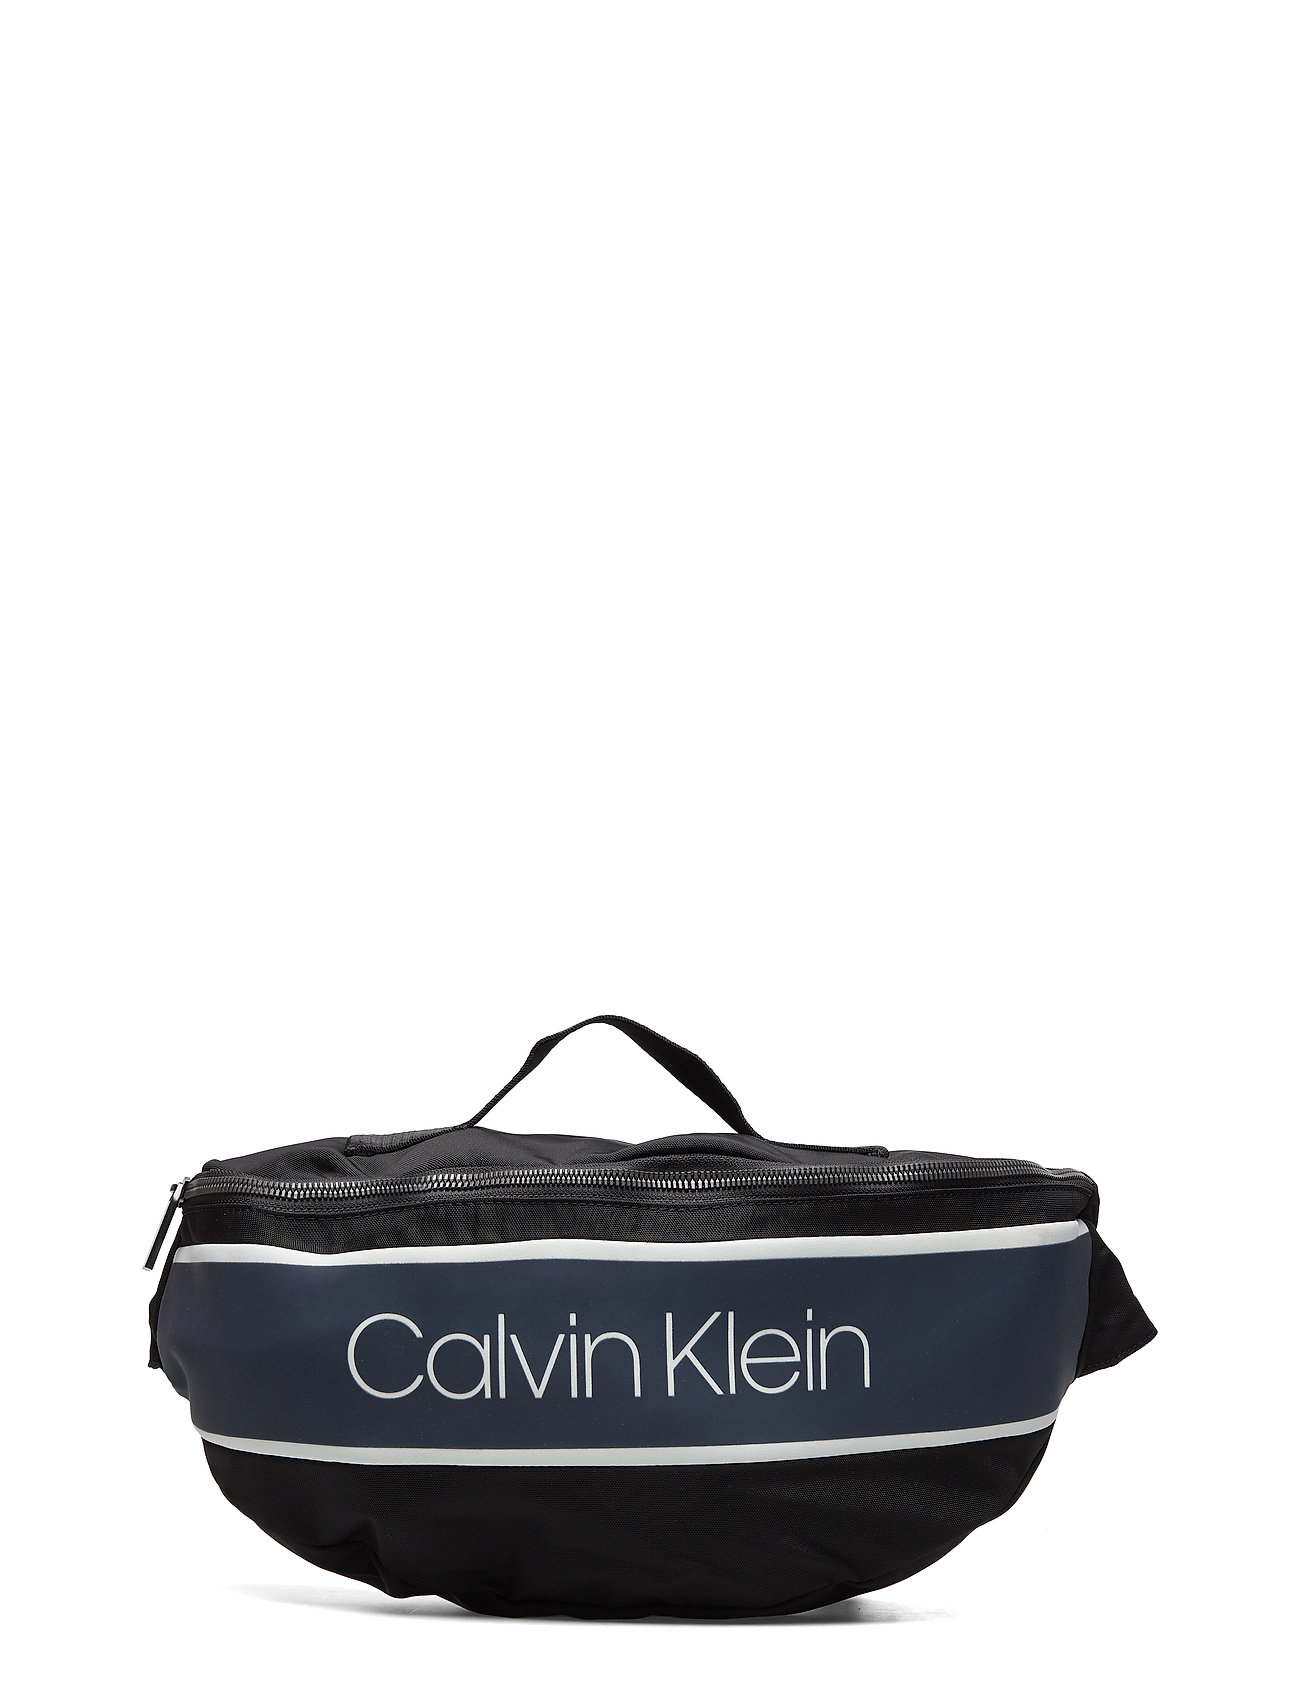 Calvin Klein STRIKE NYLON XL STRE - BLACK